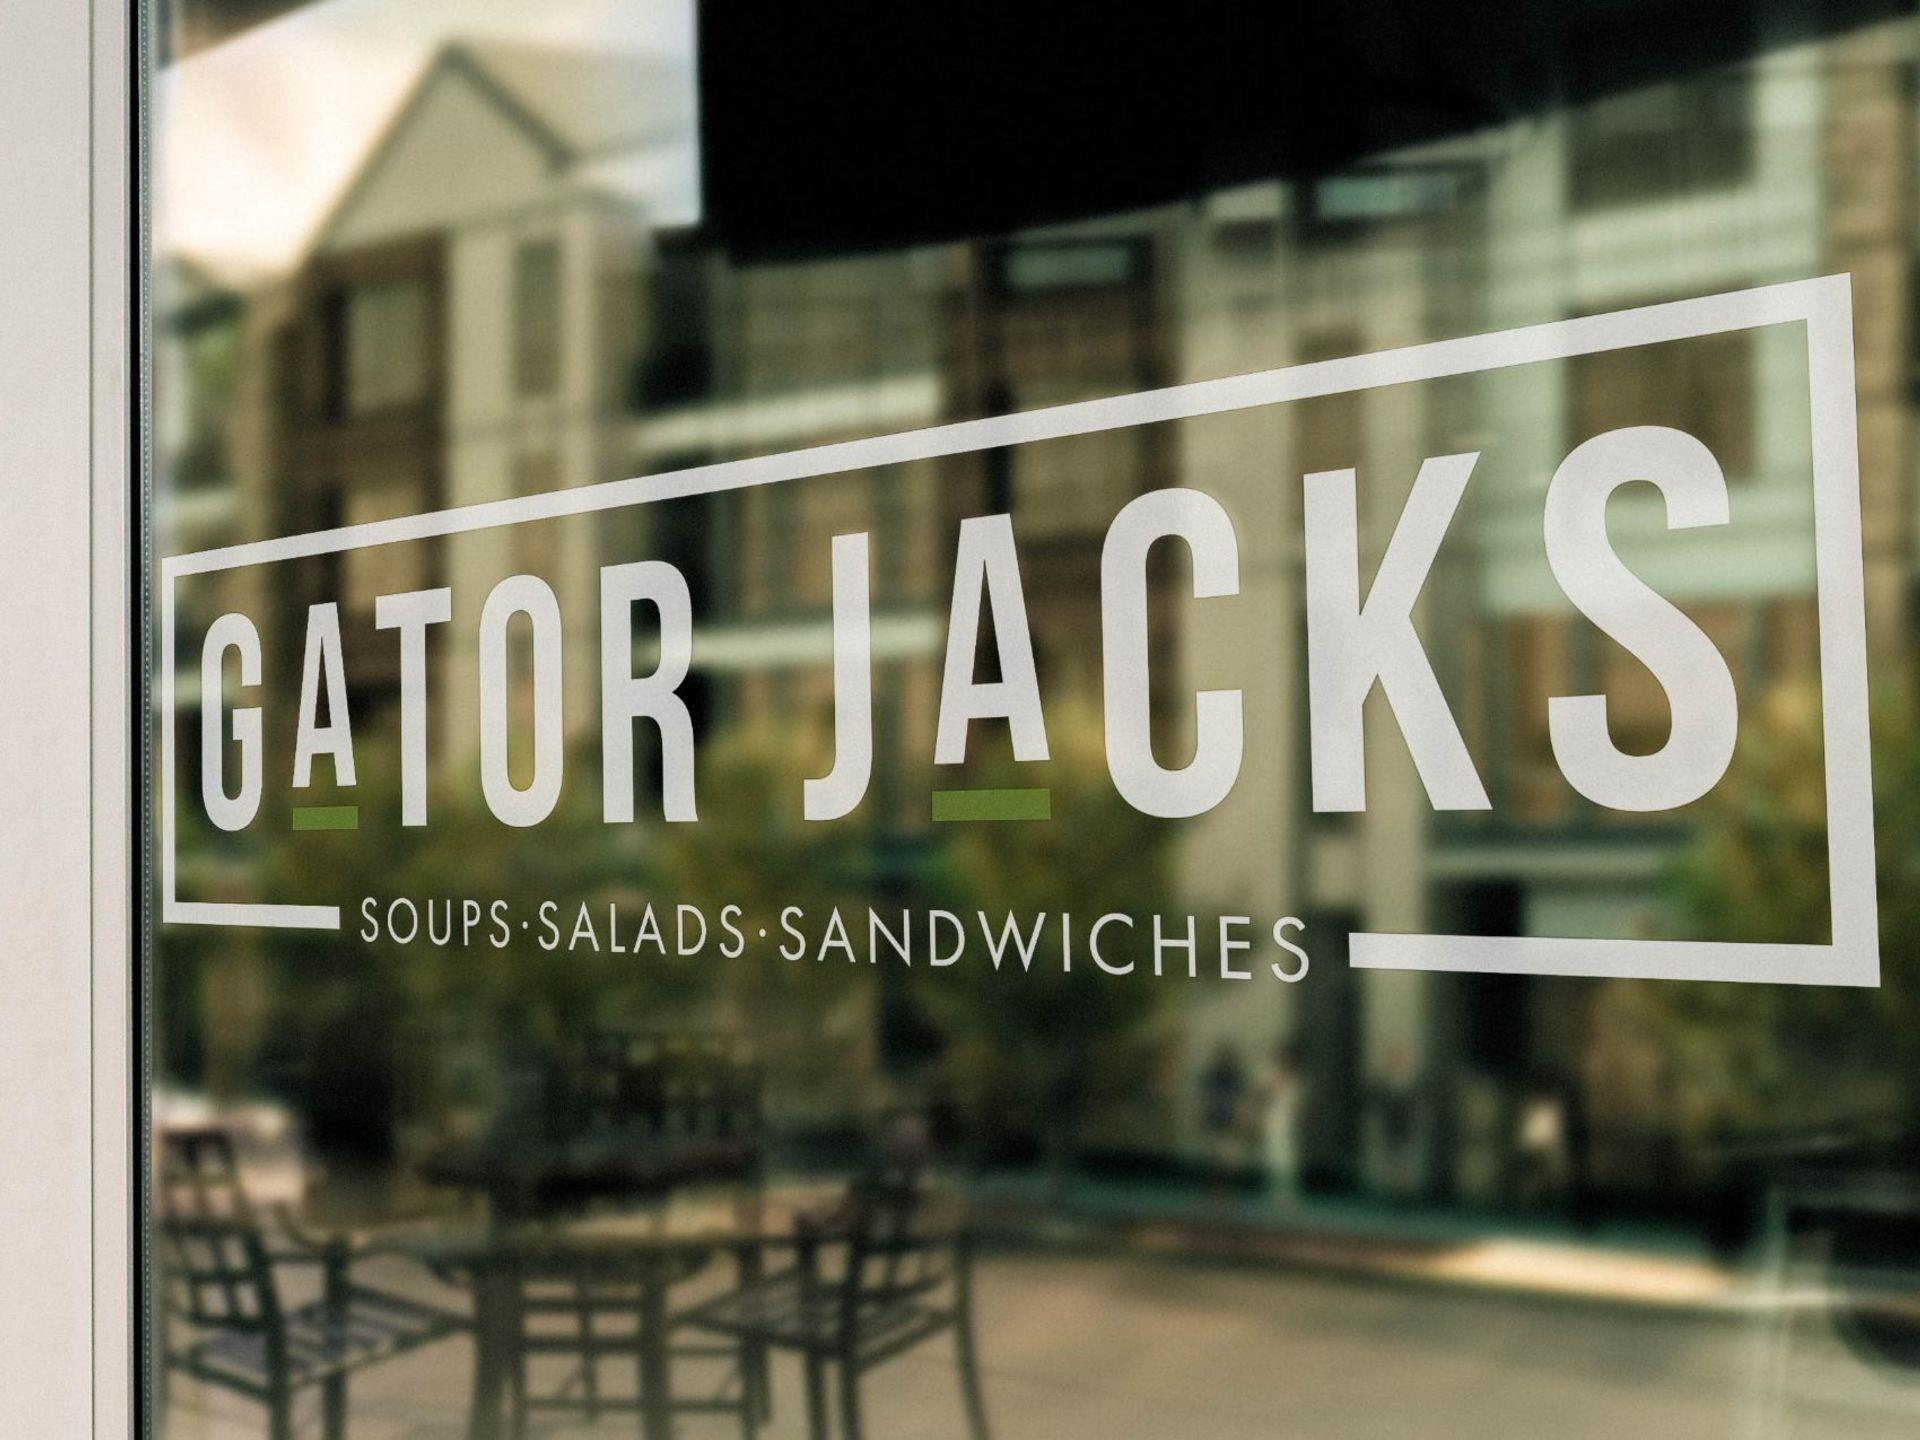 Gator Jacks logo on a window